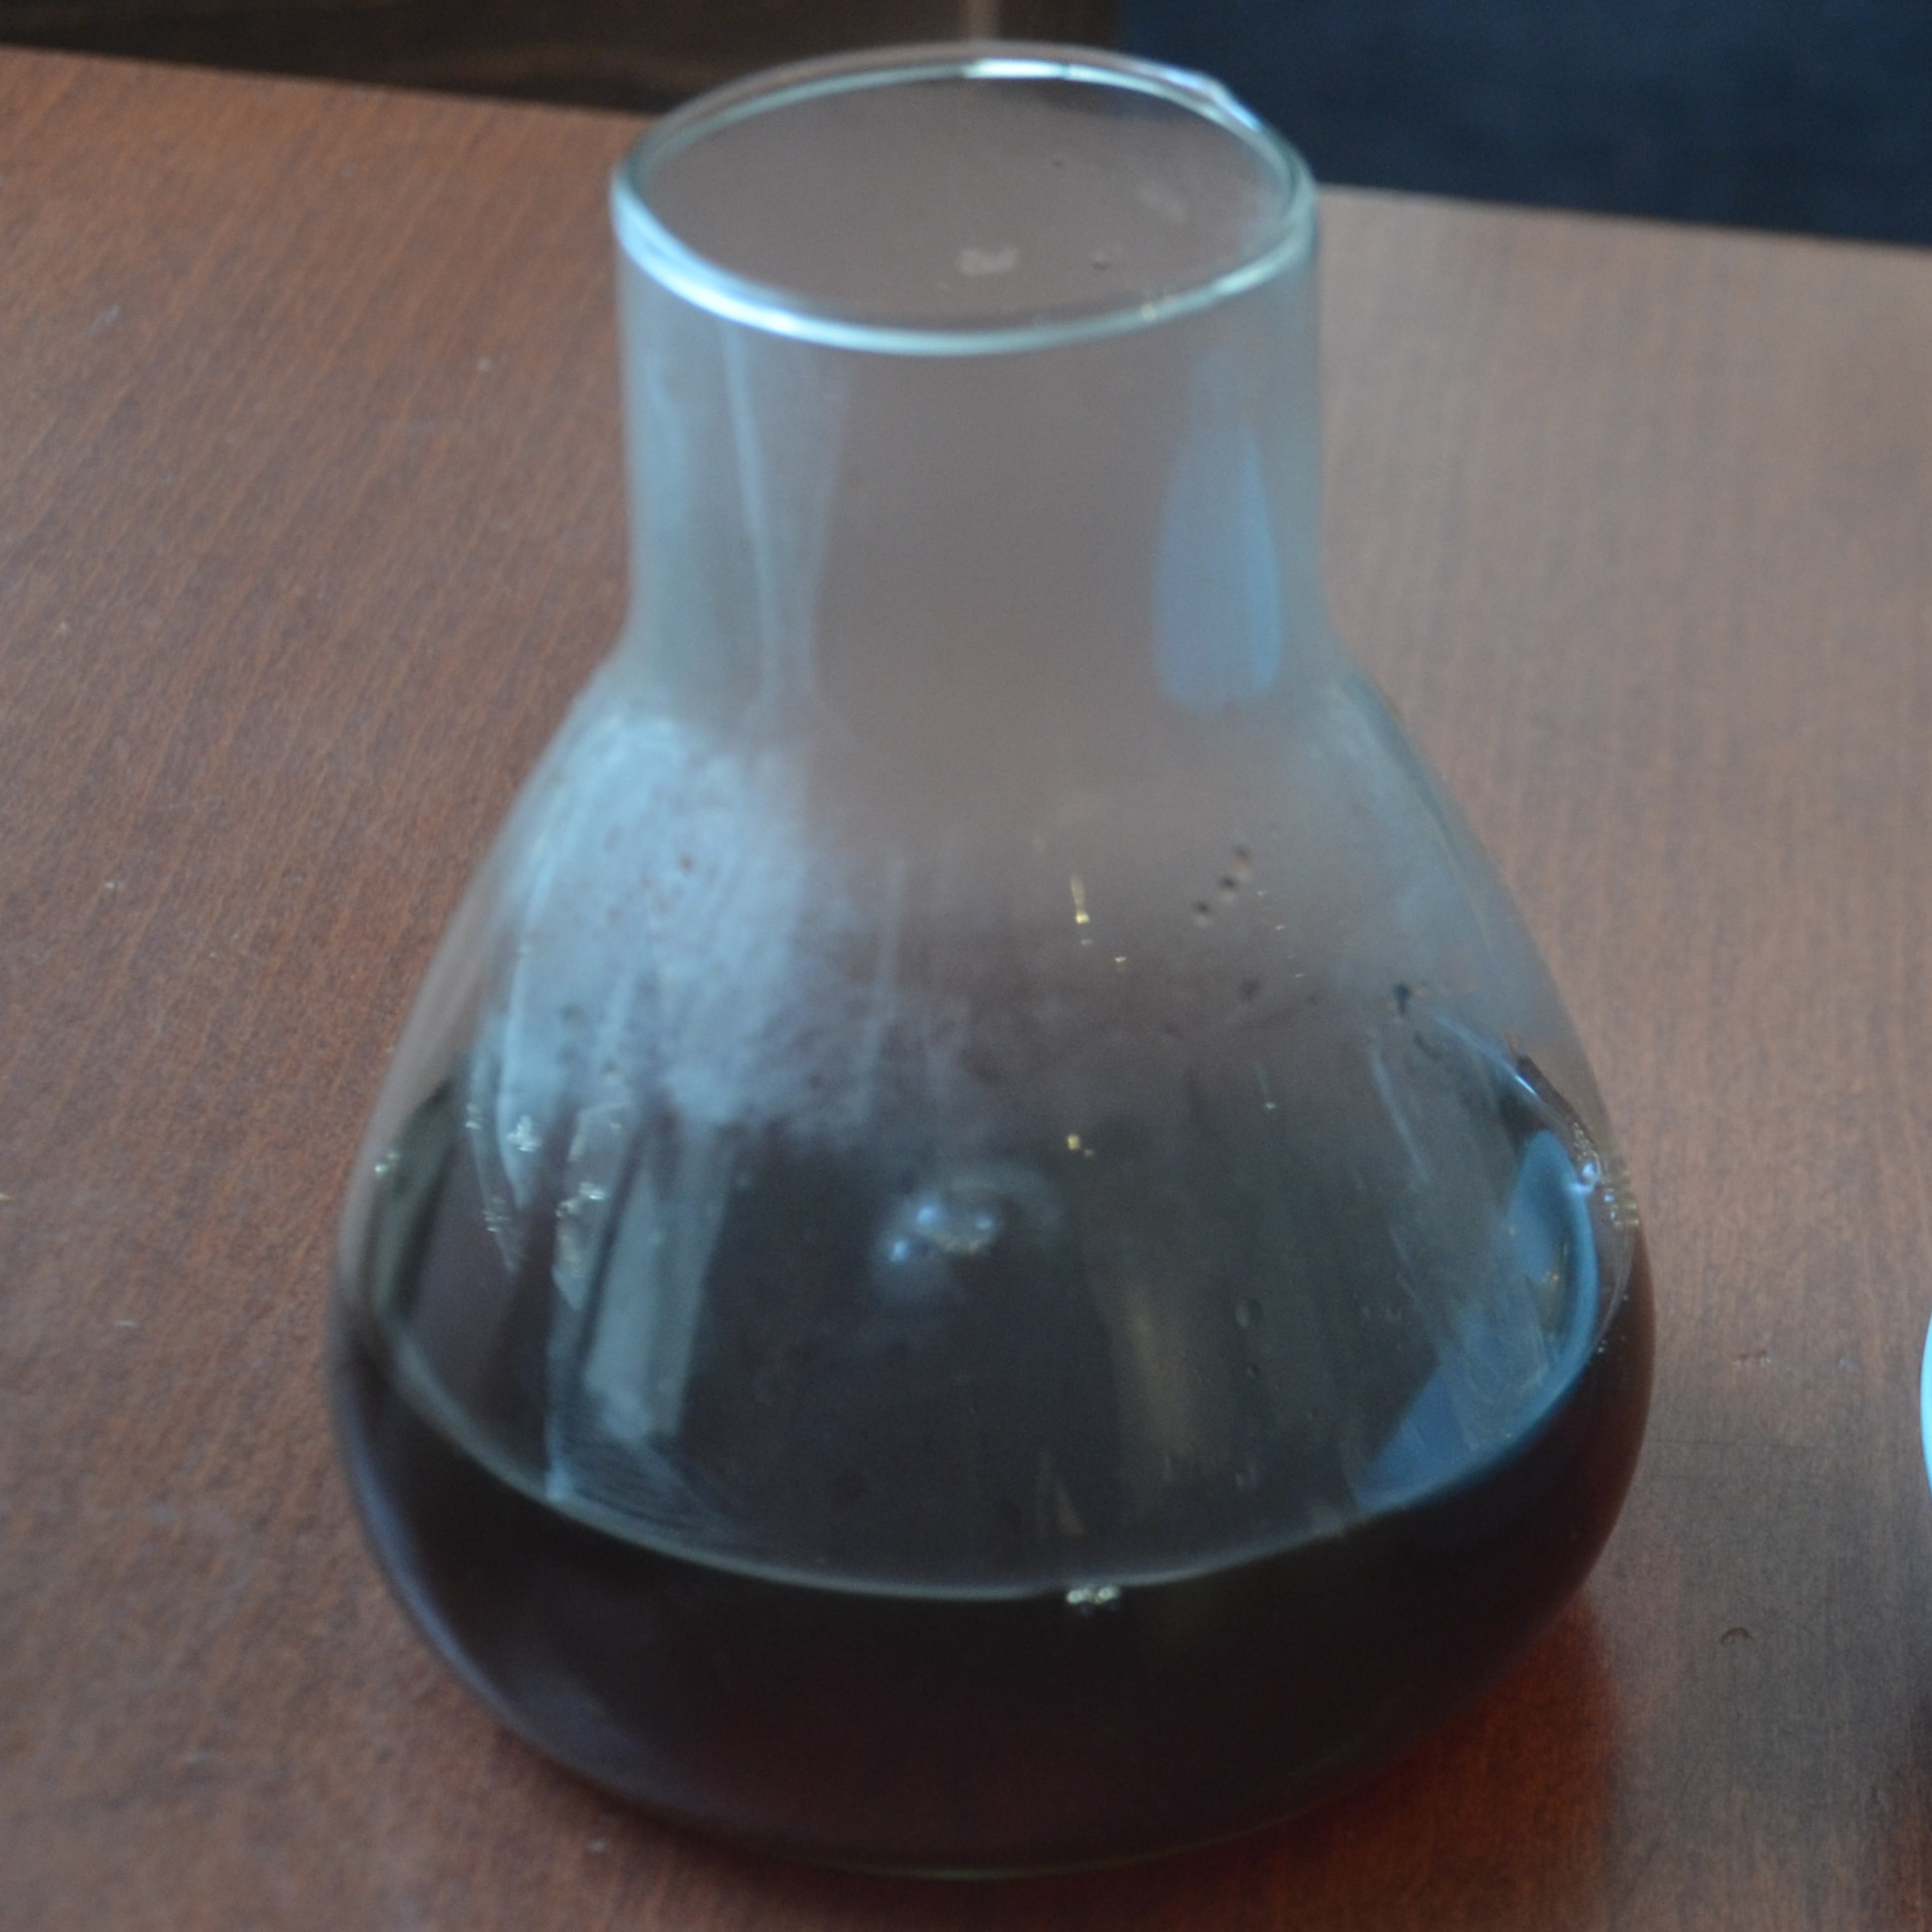 A carafe of the natural Ethiopian batch brew from Stone Valley Roaster, served at Dukes Coffee Company in Cork.